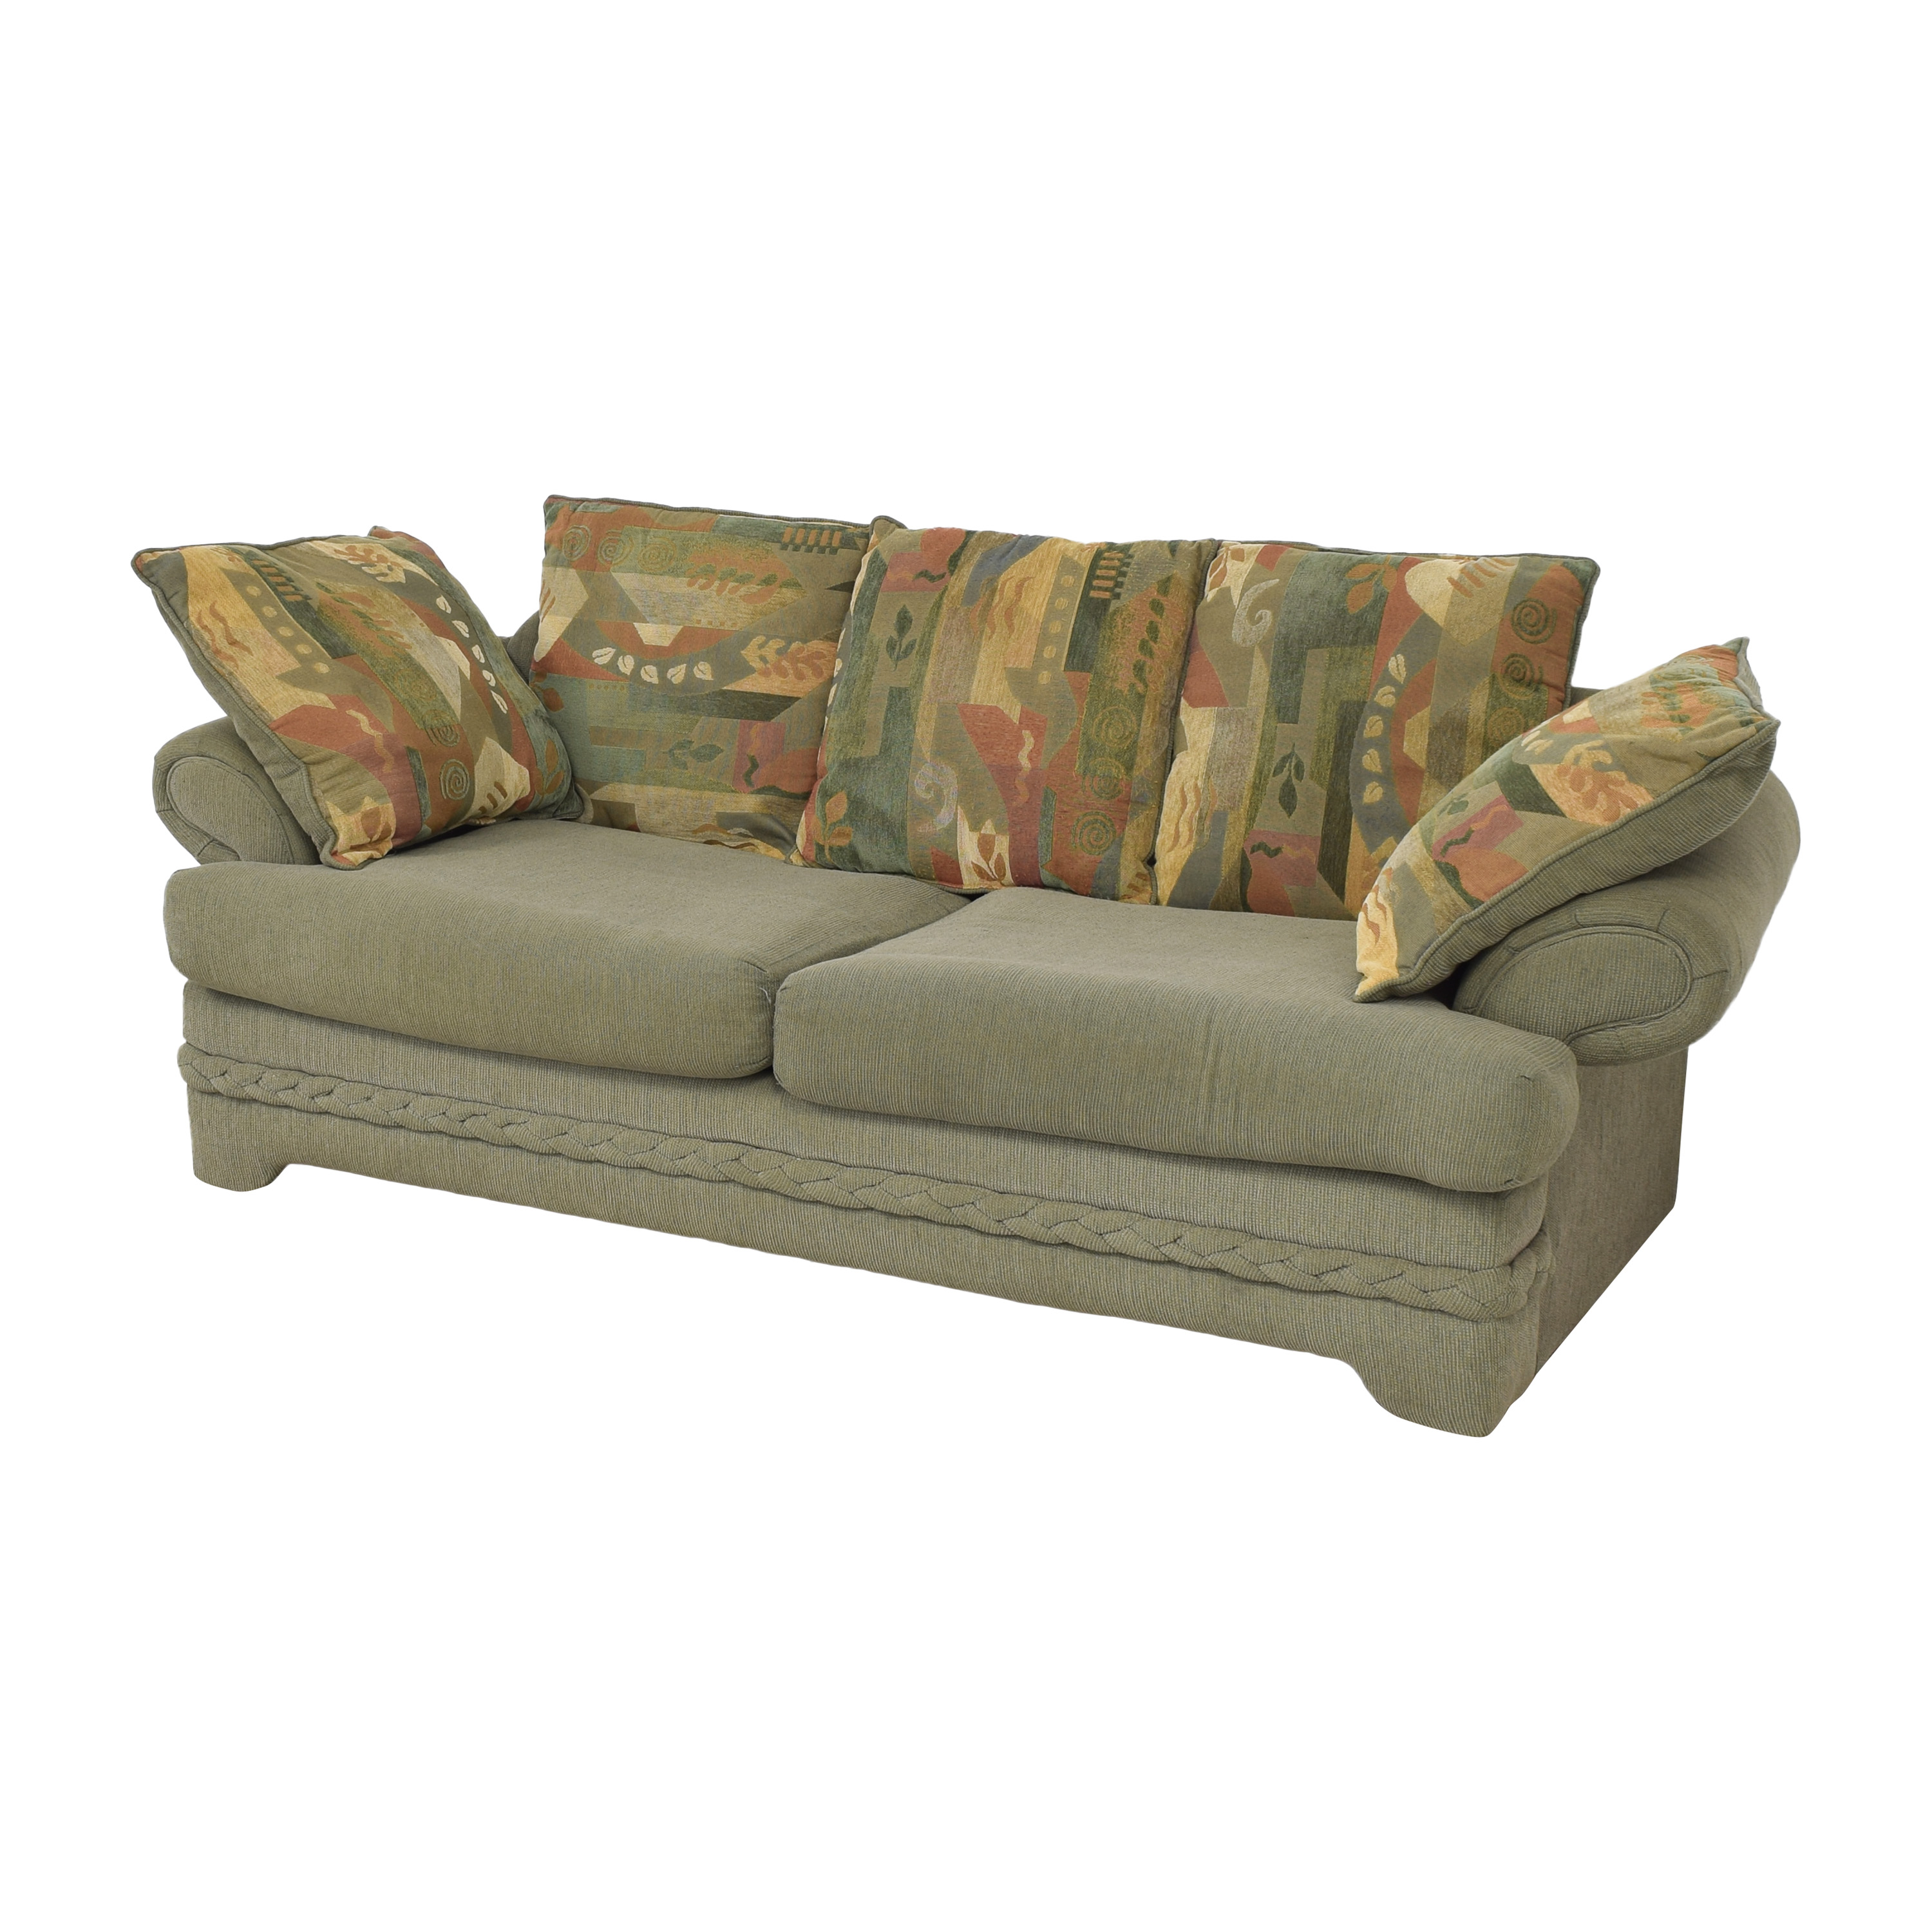 Two Cushion Sofa with Pillows used